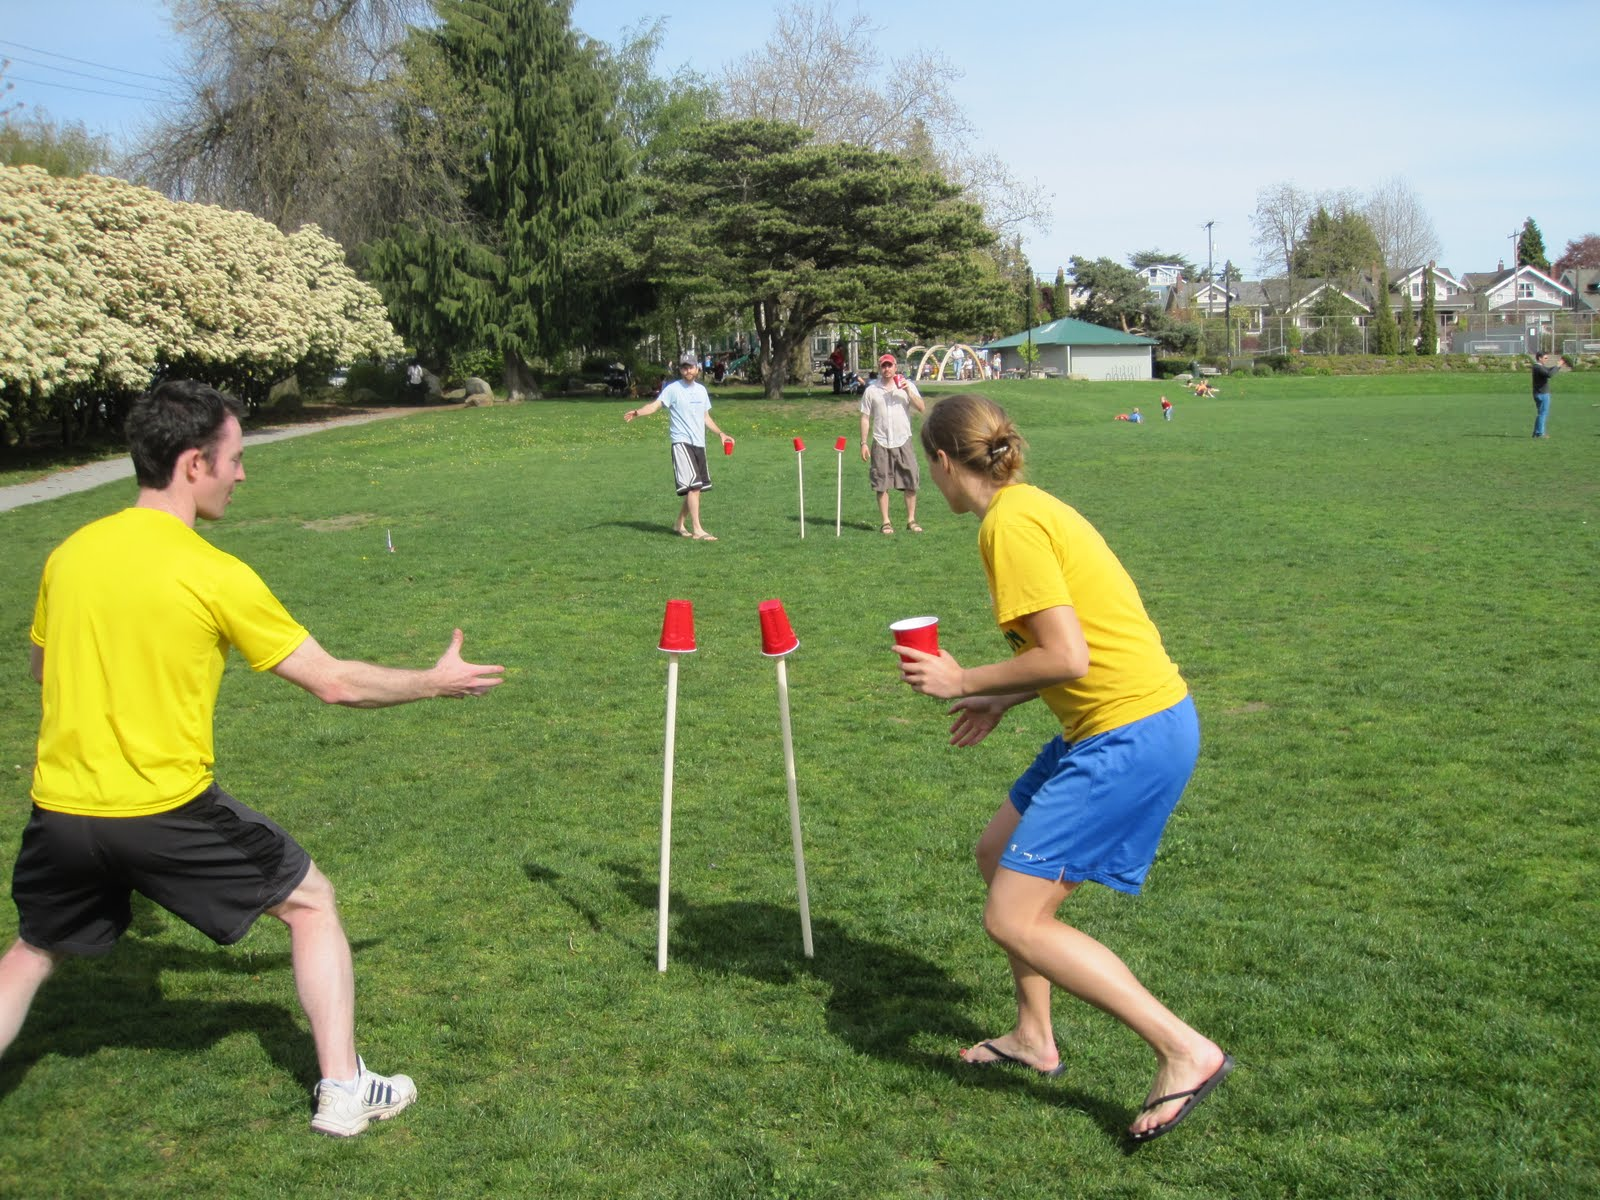 Fun Summer Game: Frisbee Cups - Featured Image